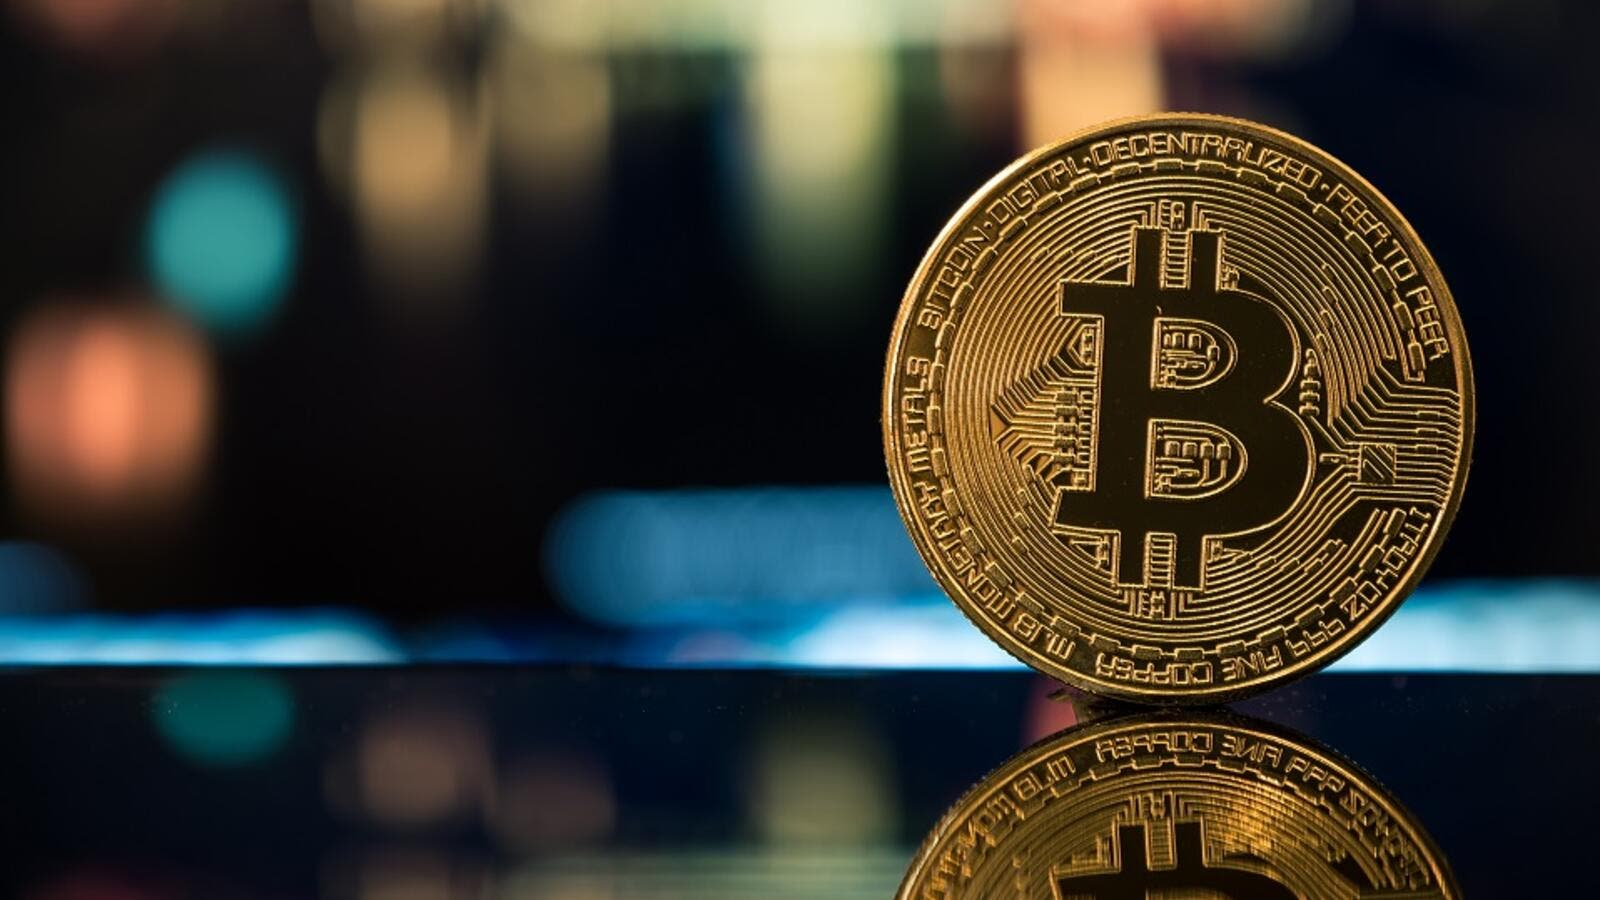 The traditional process of buying cryptocurrency like bitcoin can be cumbersome and intimidating to the average U.S. consumer. (Shutterstock)